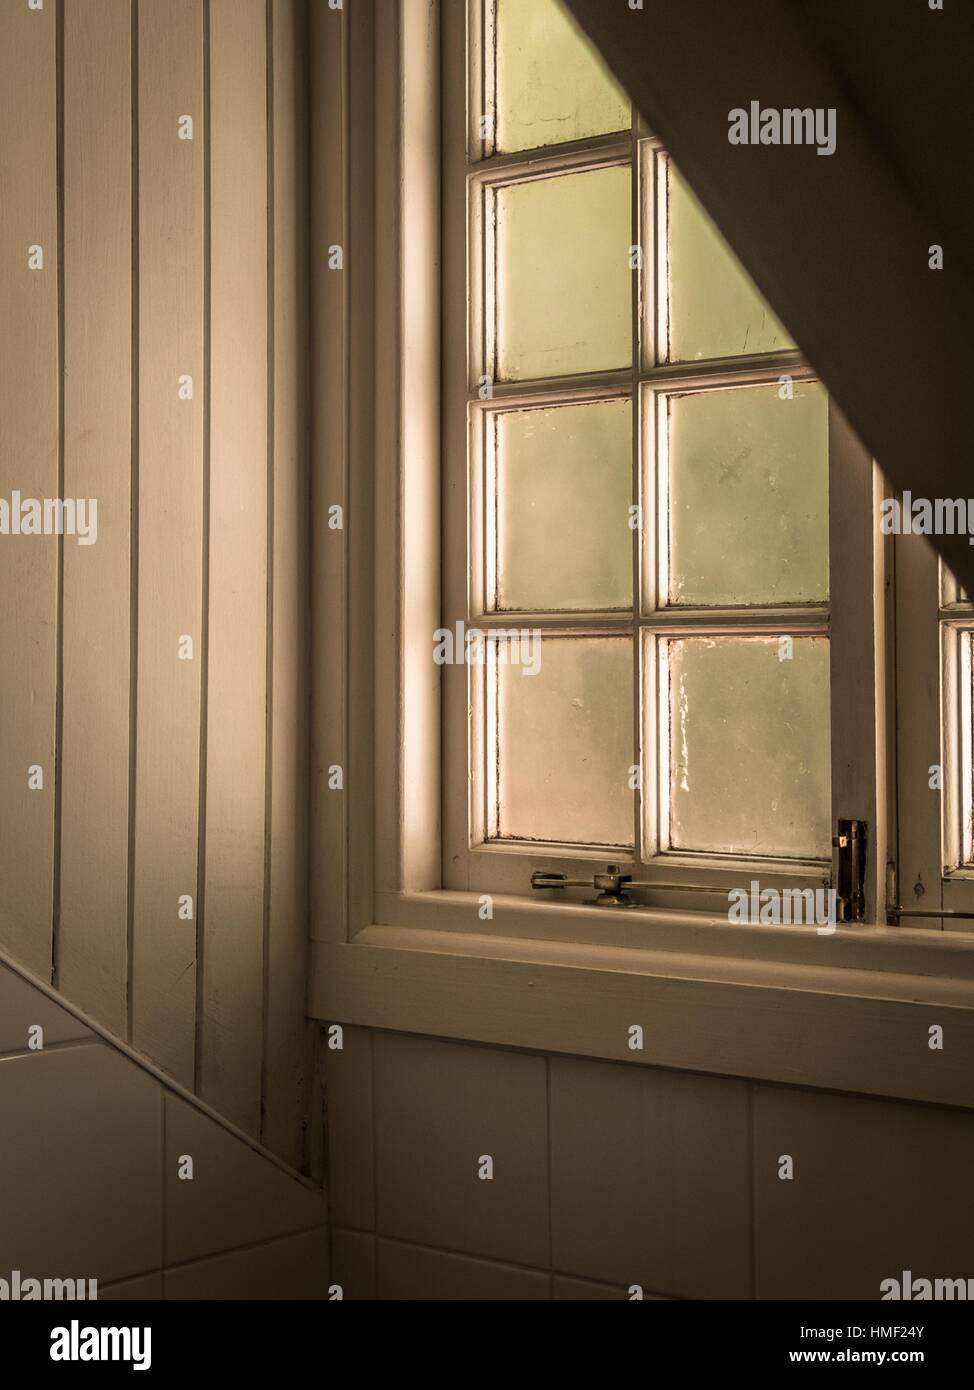 A loft window, frosted glass kjeeps out the glare. - Stock Image